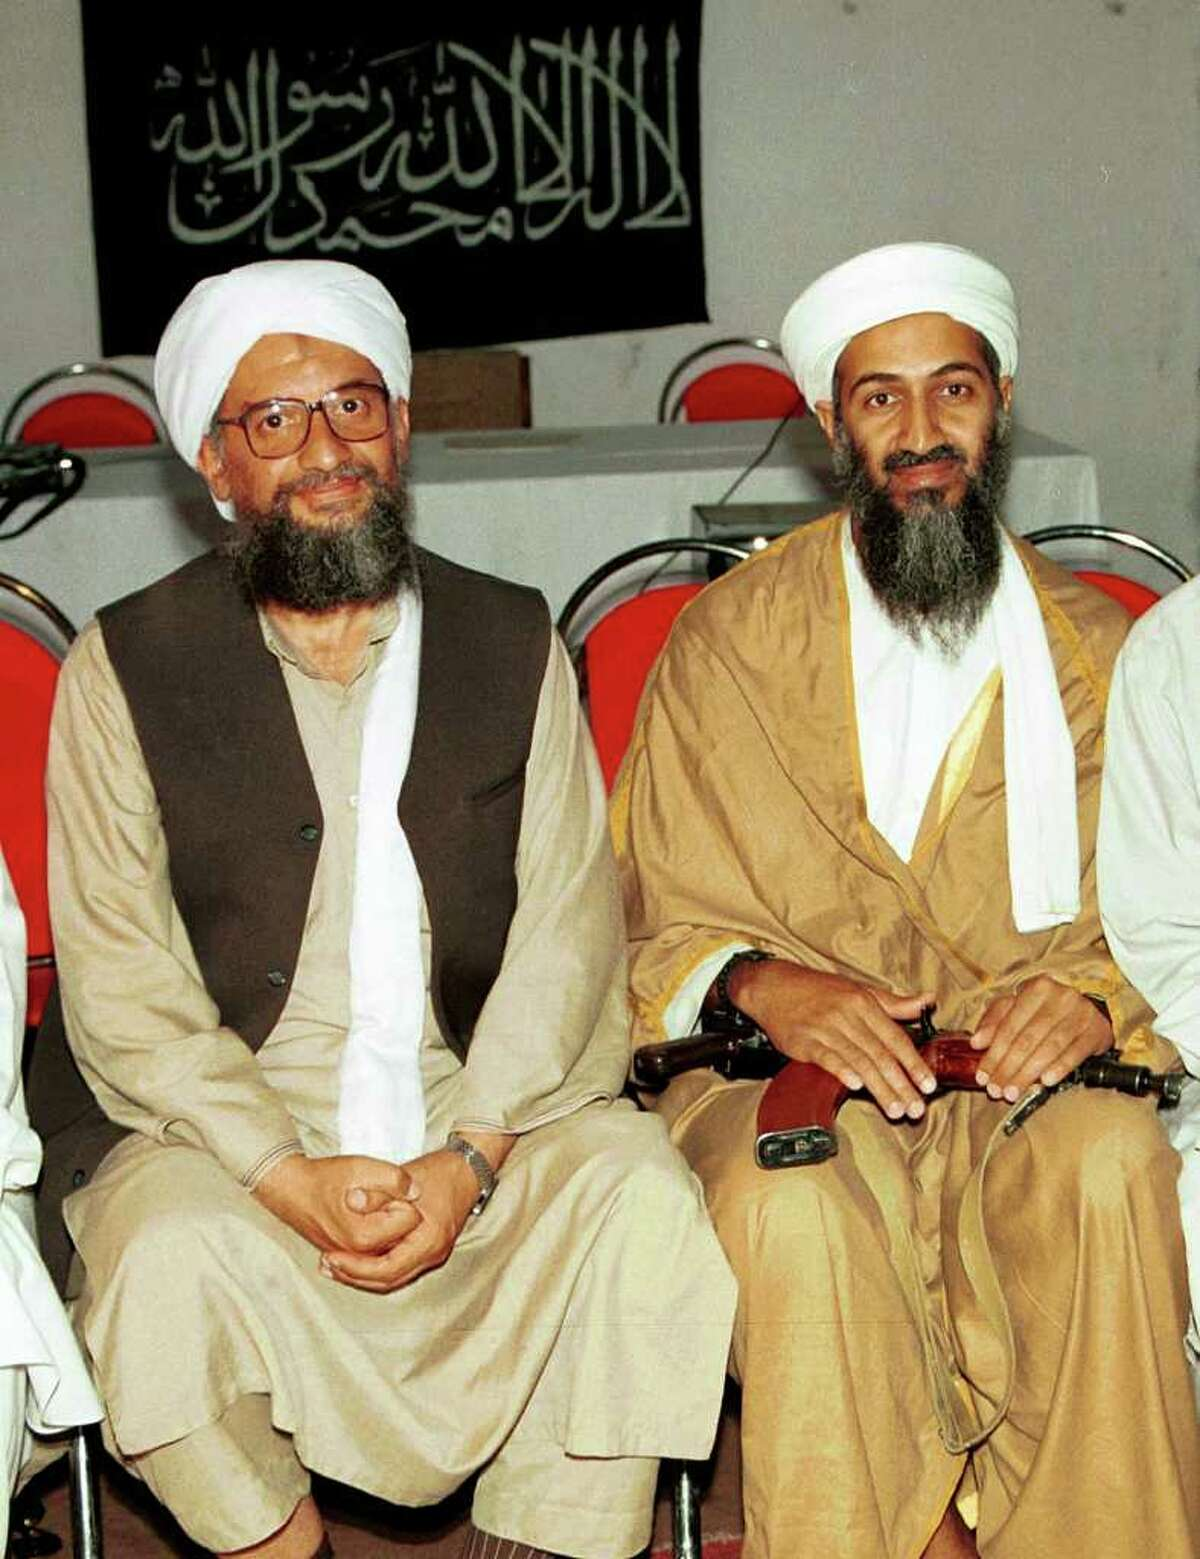 FILE - In this 1998 file photo, Ayman al-Zawahri, left, poses for a photograph with Osama bin Laden, right, taken in Khost, Afghanistan and made available Friday March 19, 2004. A person familiar with developments said Sunday, May 1, 2011 that bin Laden is dead and the U.S. has the body.(AP Photo/Mazhar Ali Khan, File)